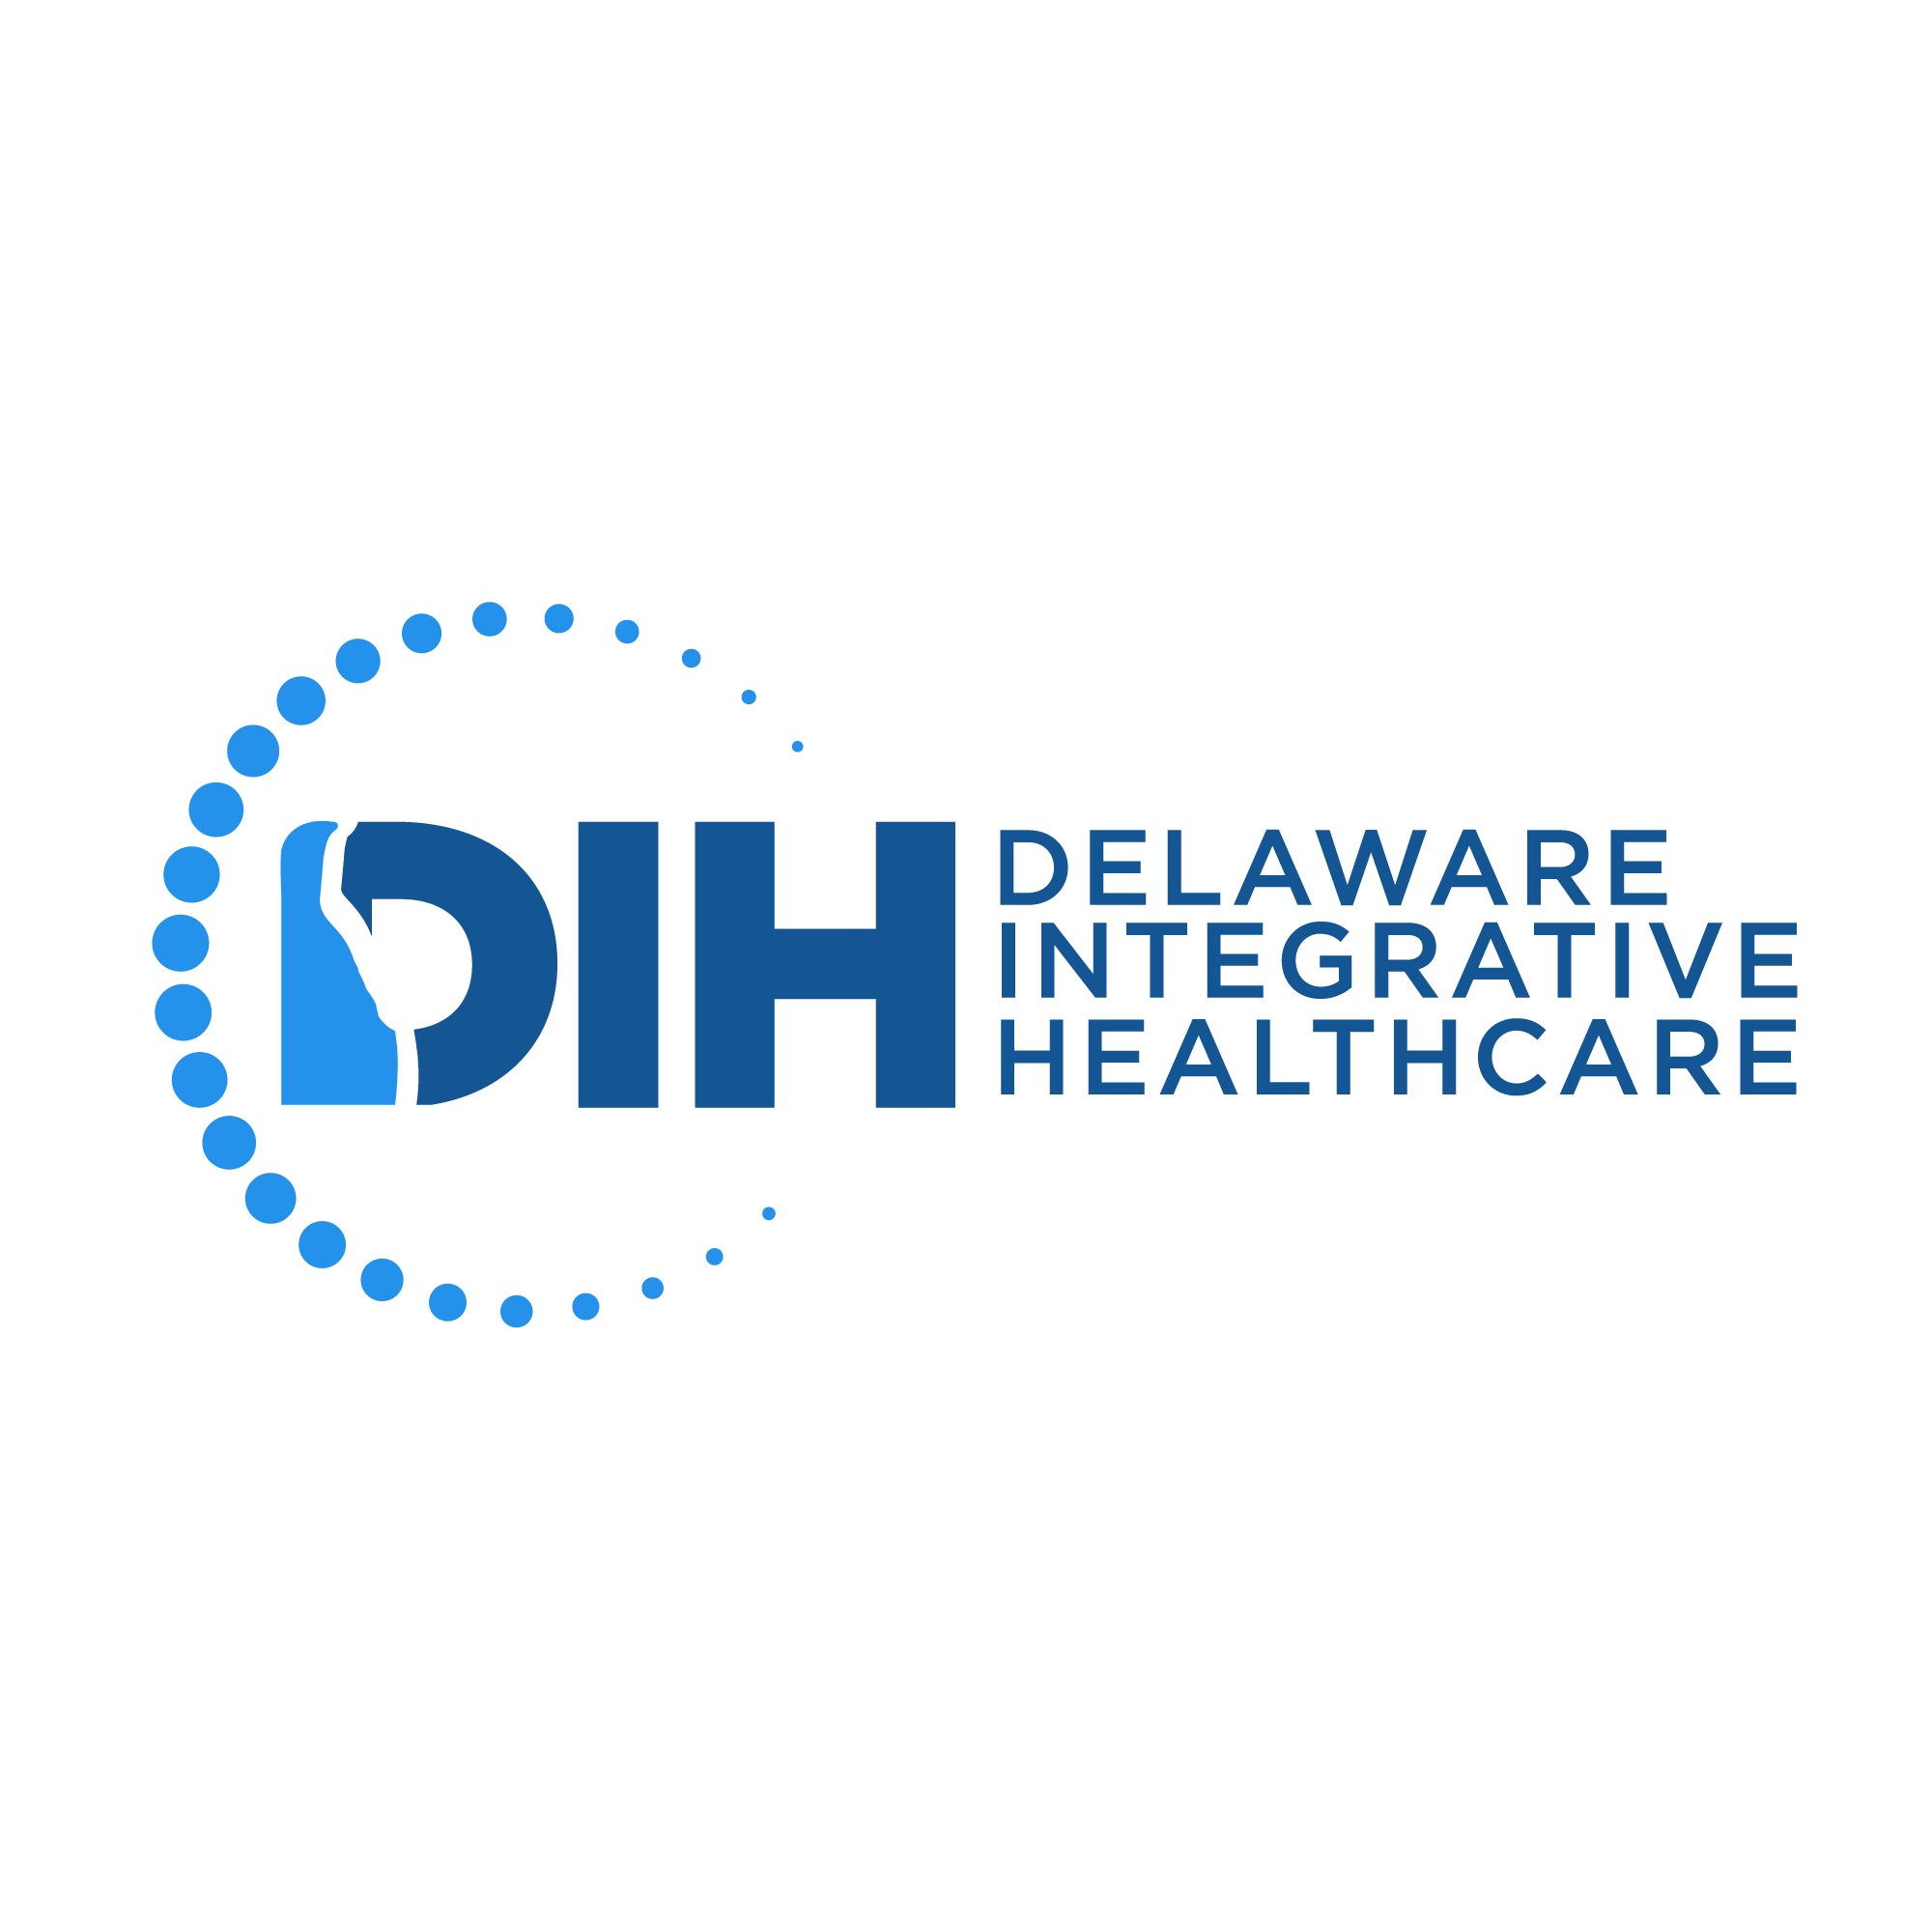 Delaware Integrative Healthcare